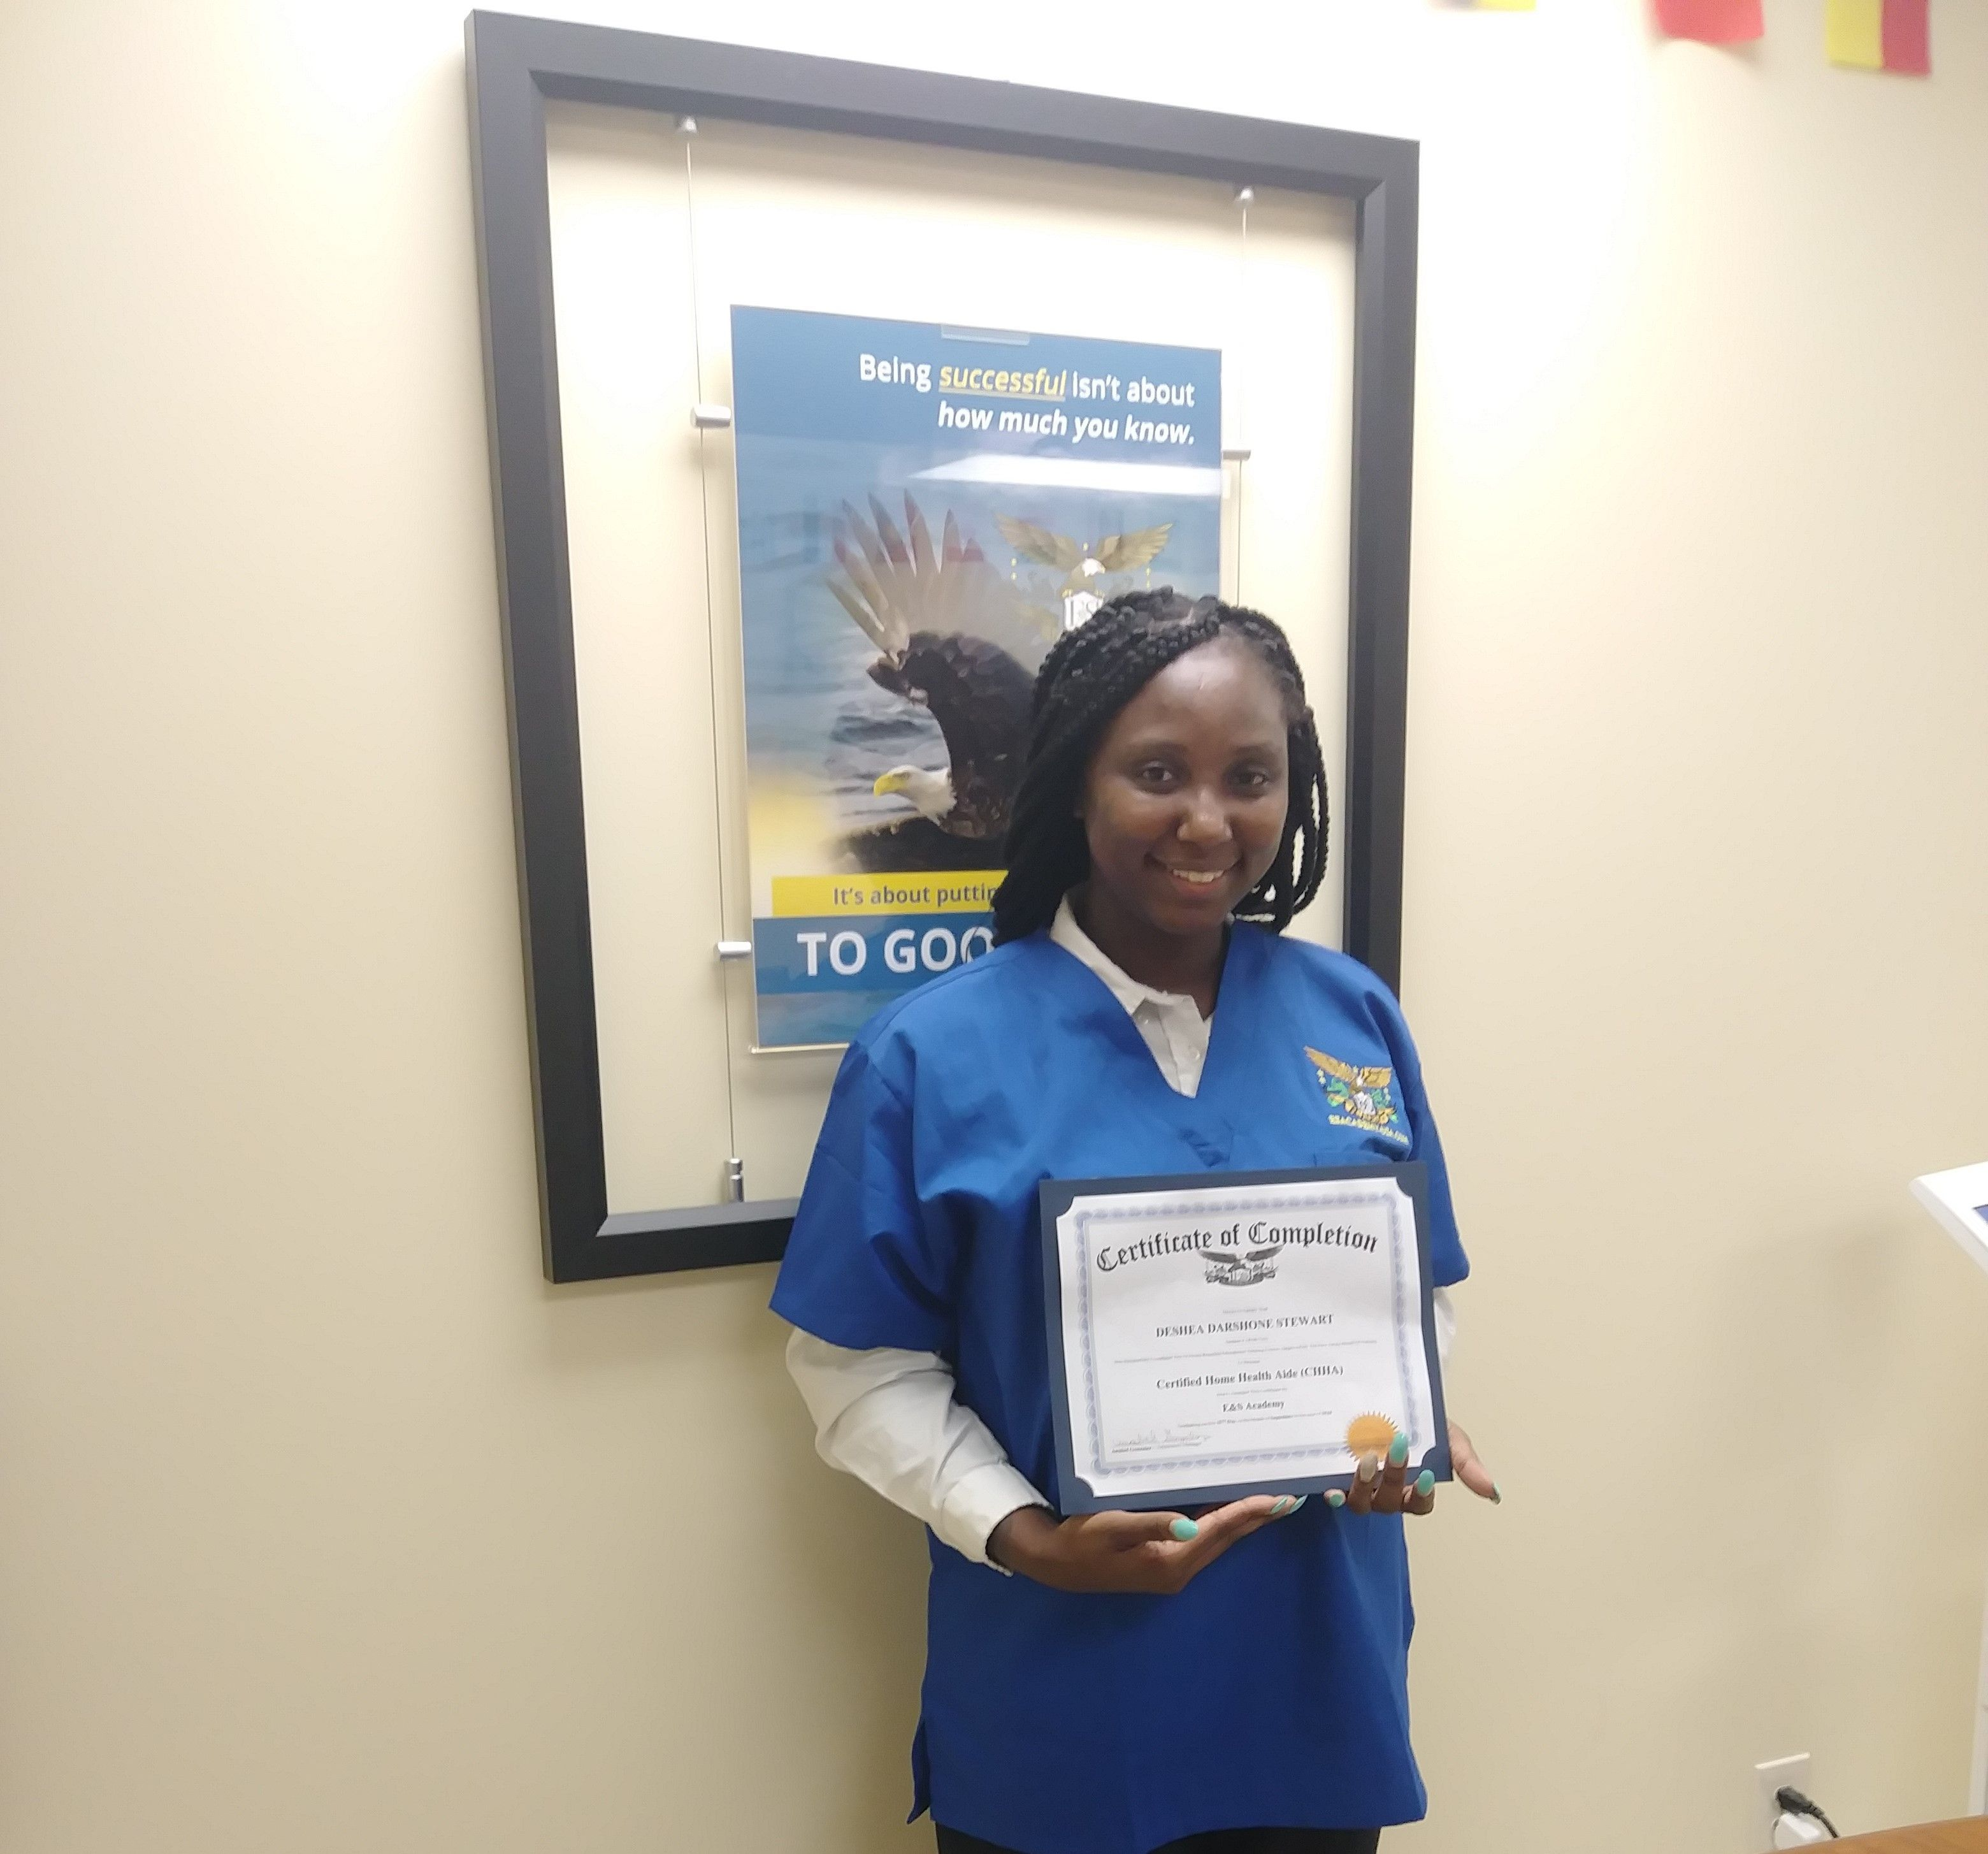 Today Educationandsuccess Brings To You Another Success Story Meet Deshea Stewart She Is Currently Wo Home Health Aide Healthcare Industry Vocational School